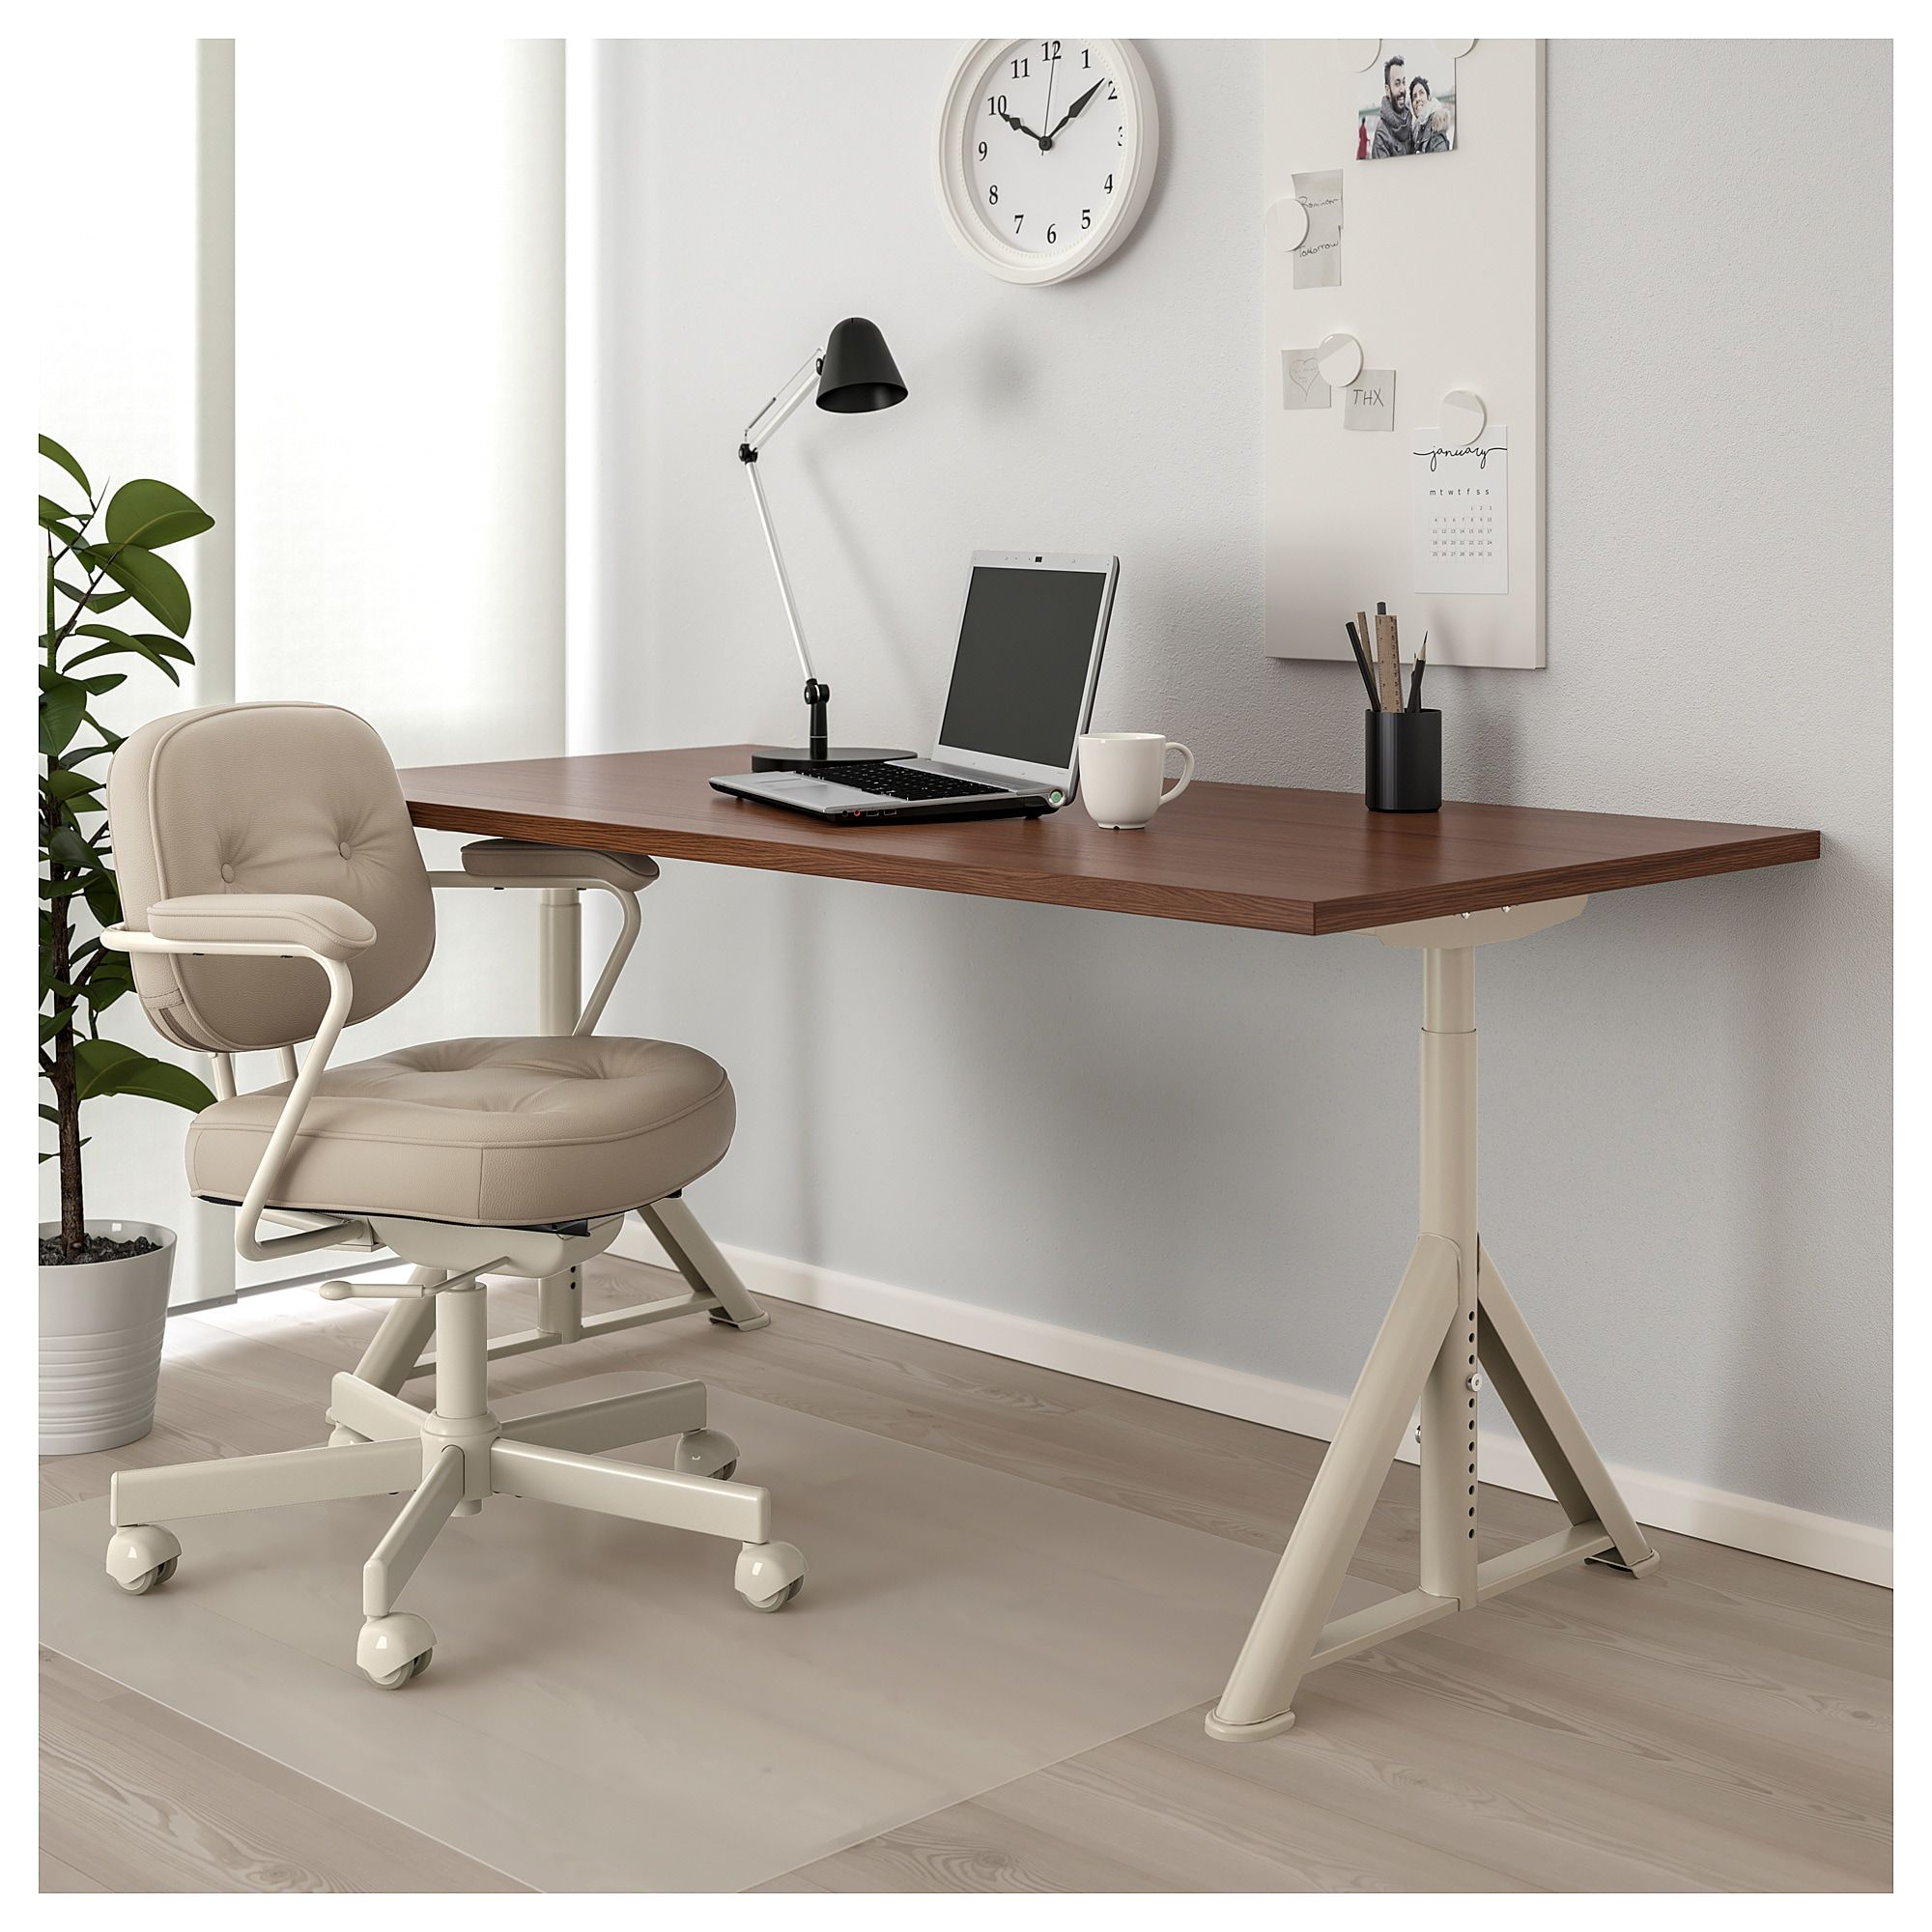 Idasen Desk Brown Beige Shop Here Ikea Cheap Office Furniture Desk Ikea